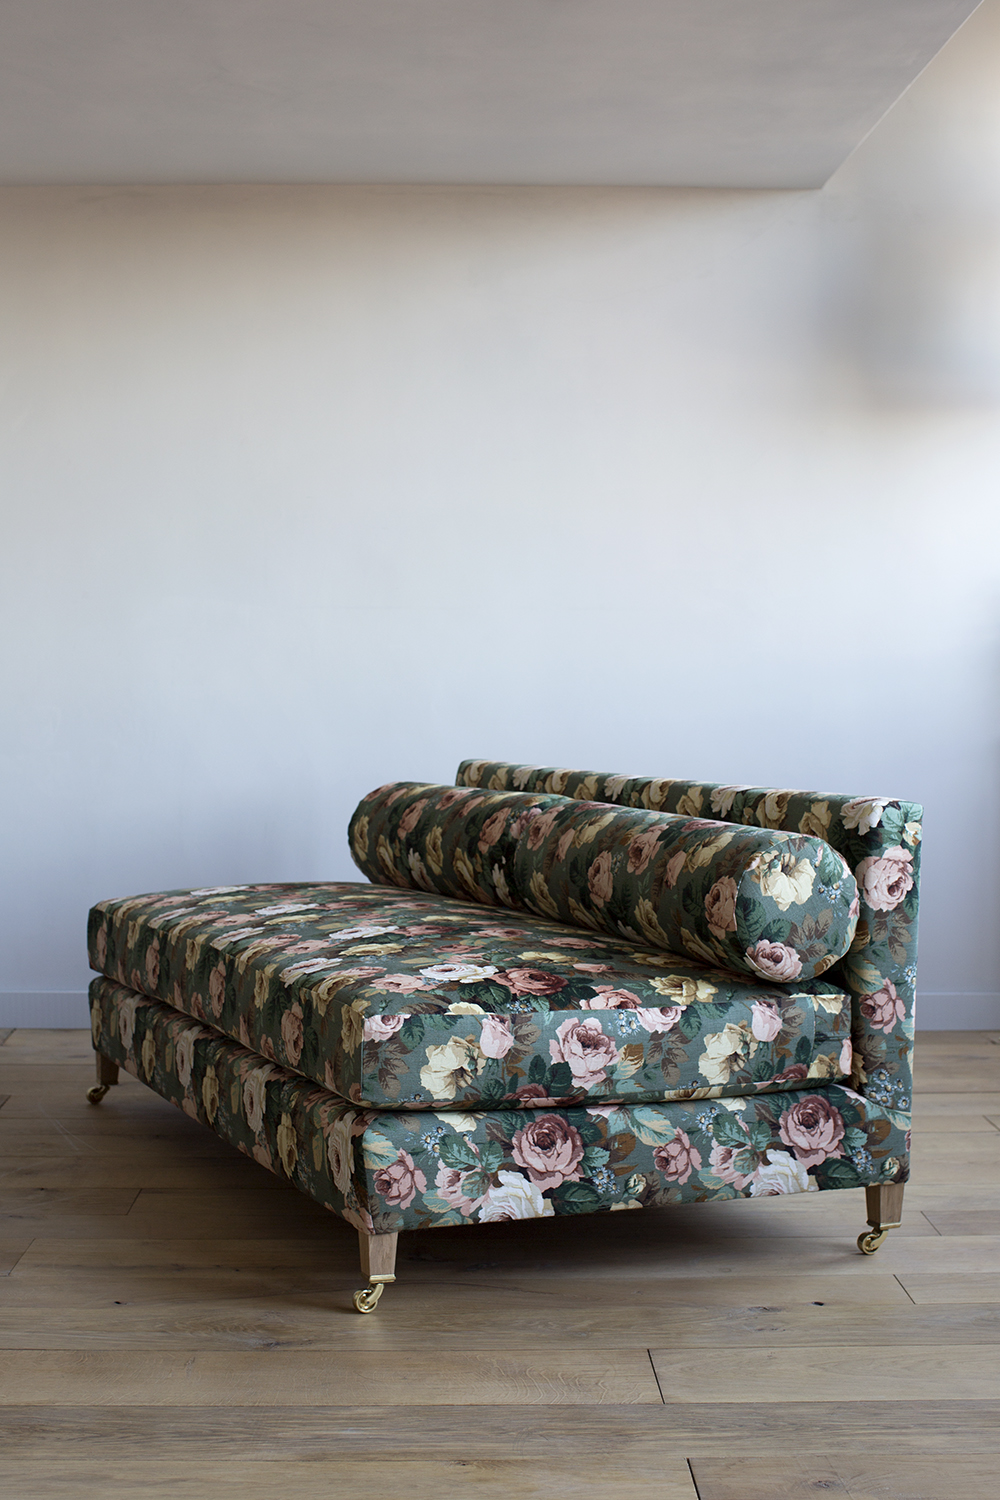 Atelier Ellis - The Sofabed/Bedsofa